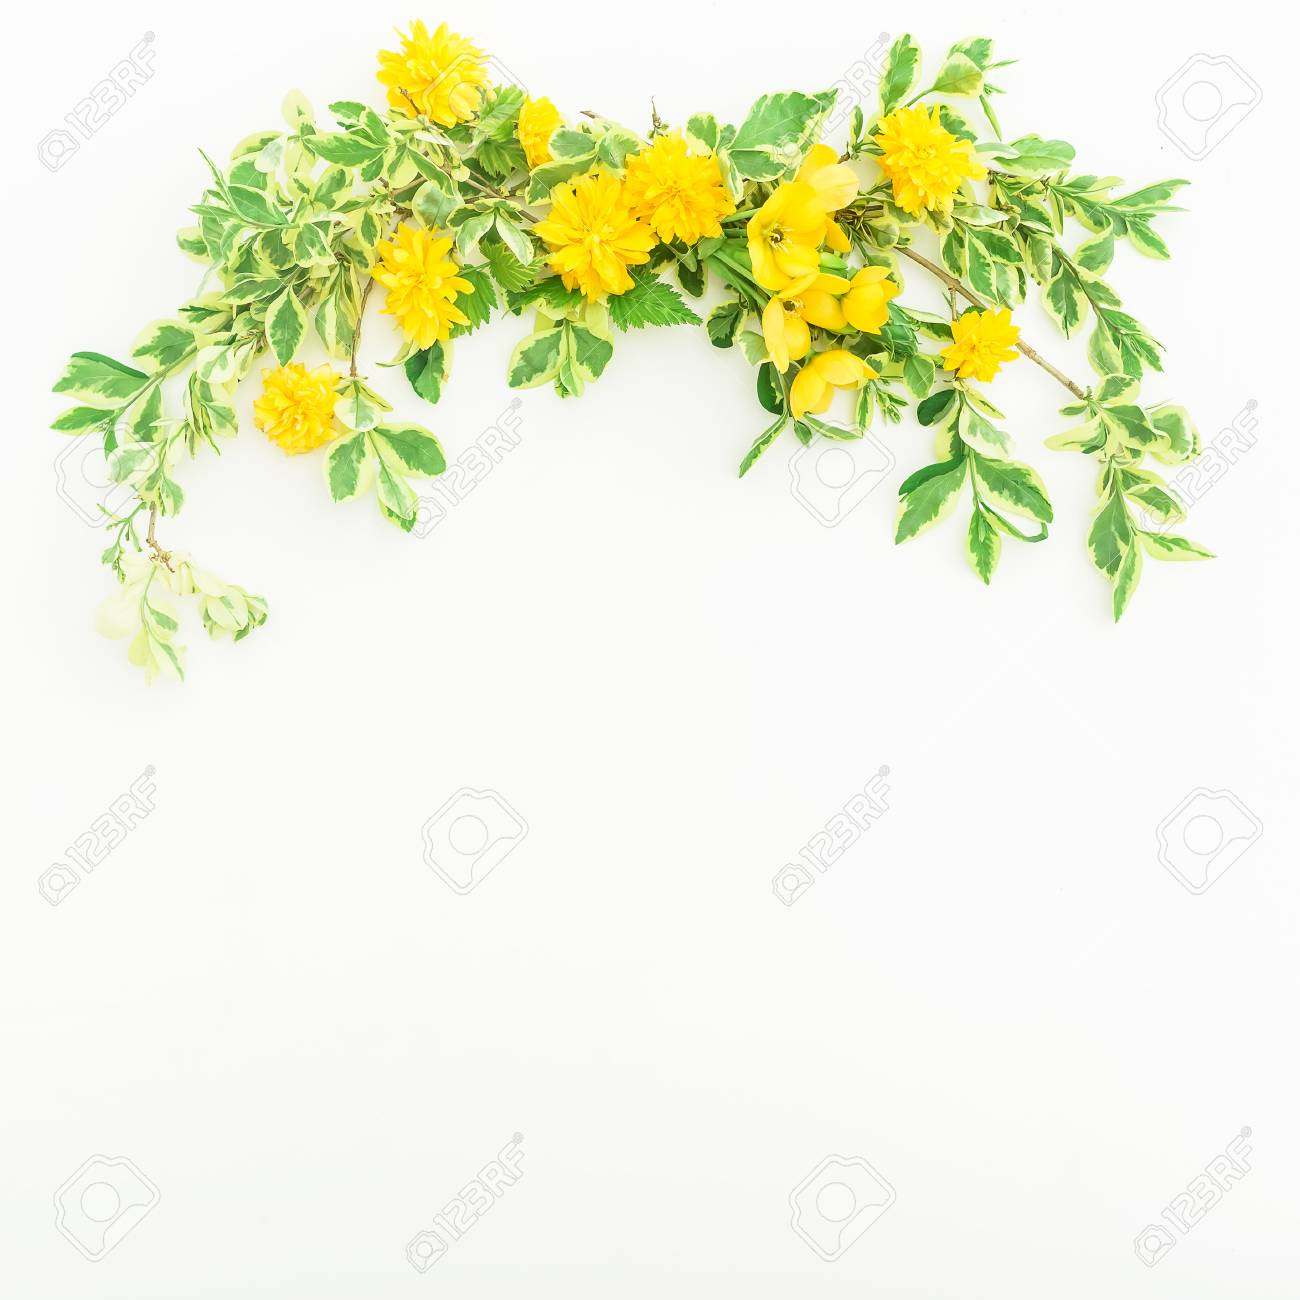 Floral Frame Made Of Branches With Yellow Flowers On White